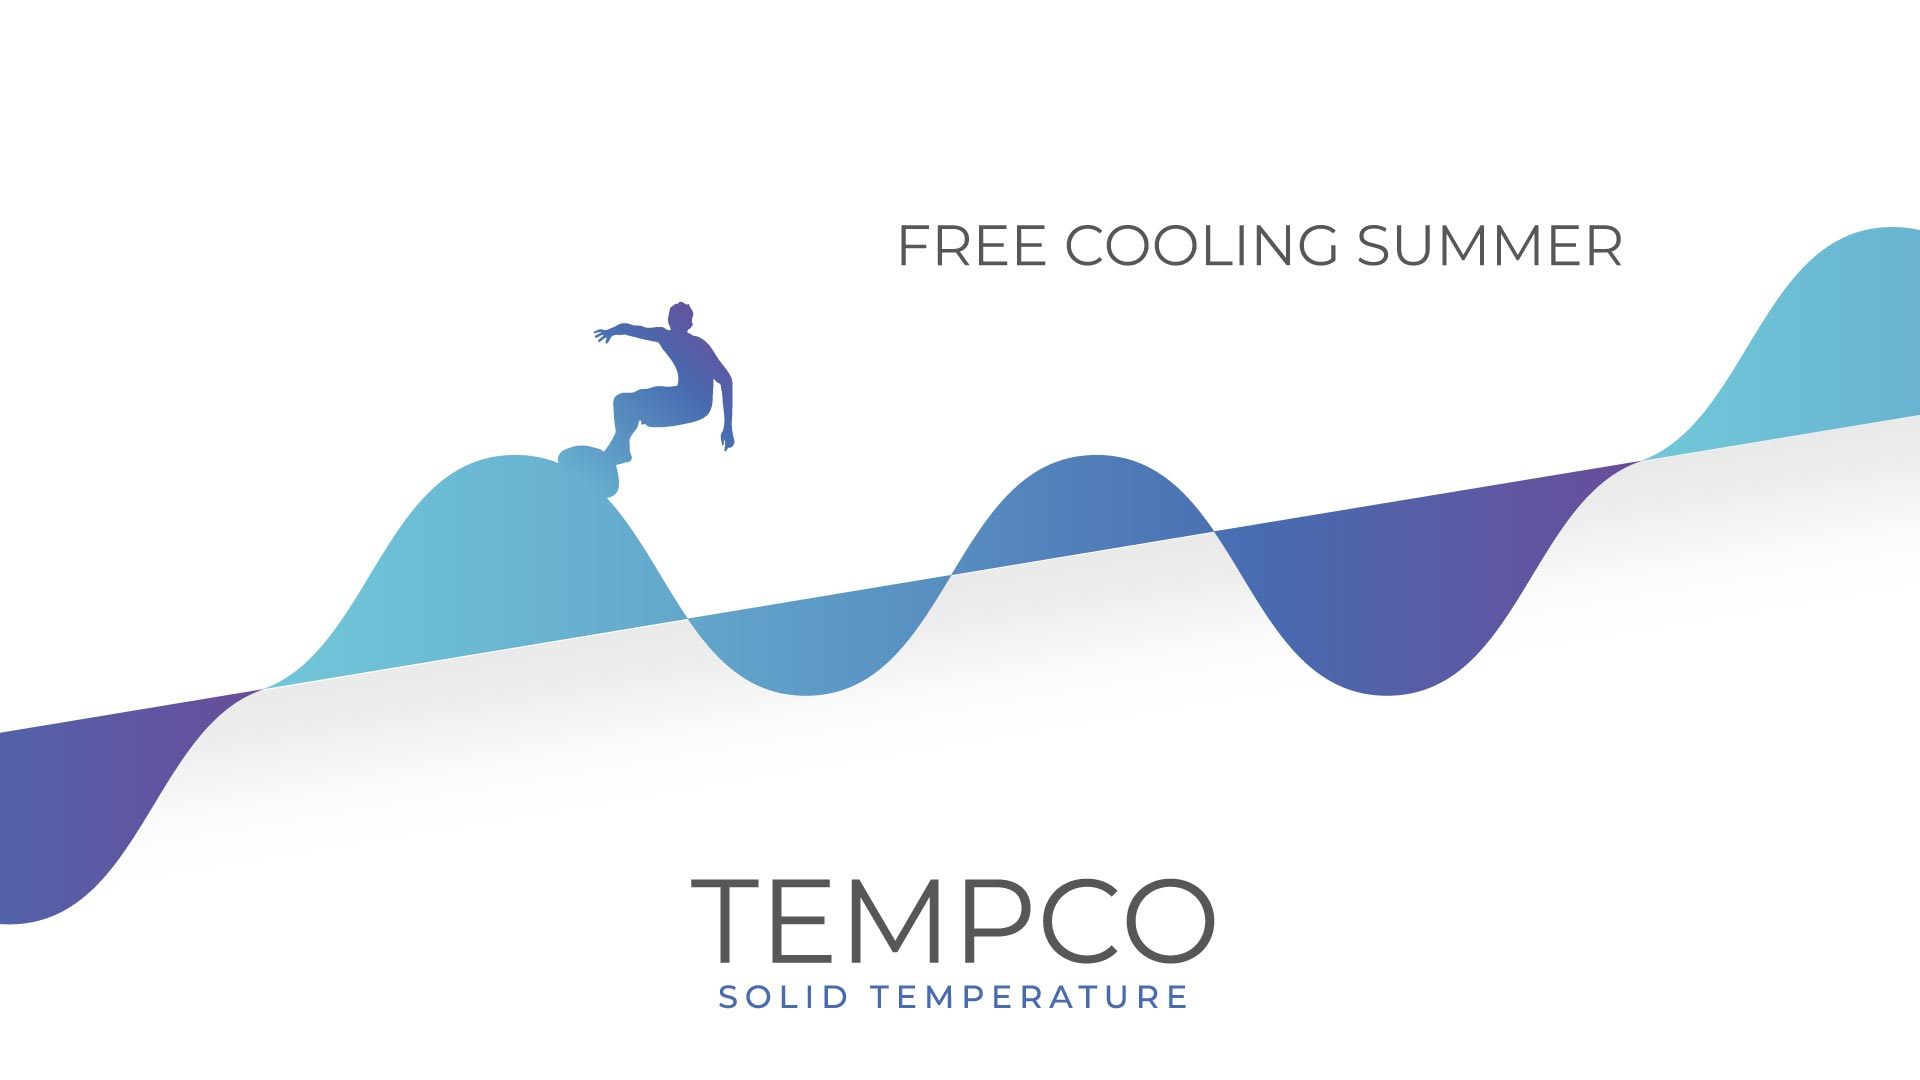 Tempco free-cooling-summer